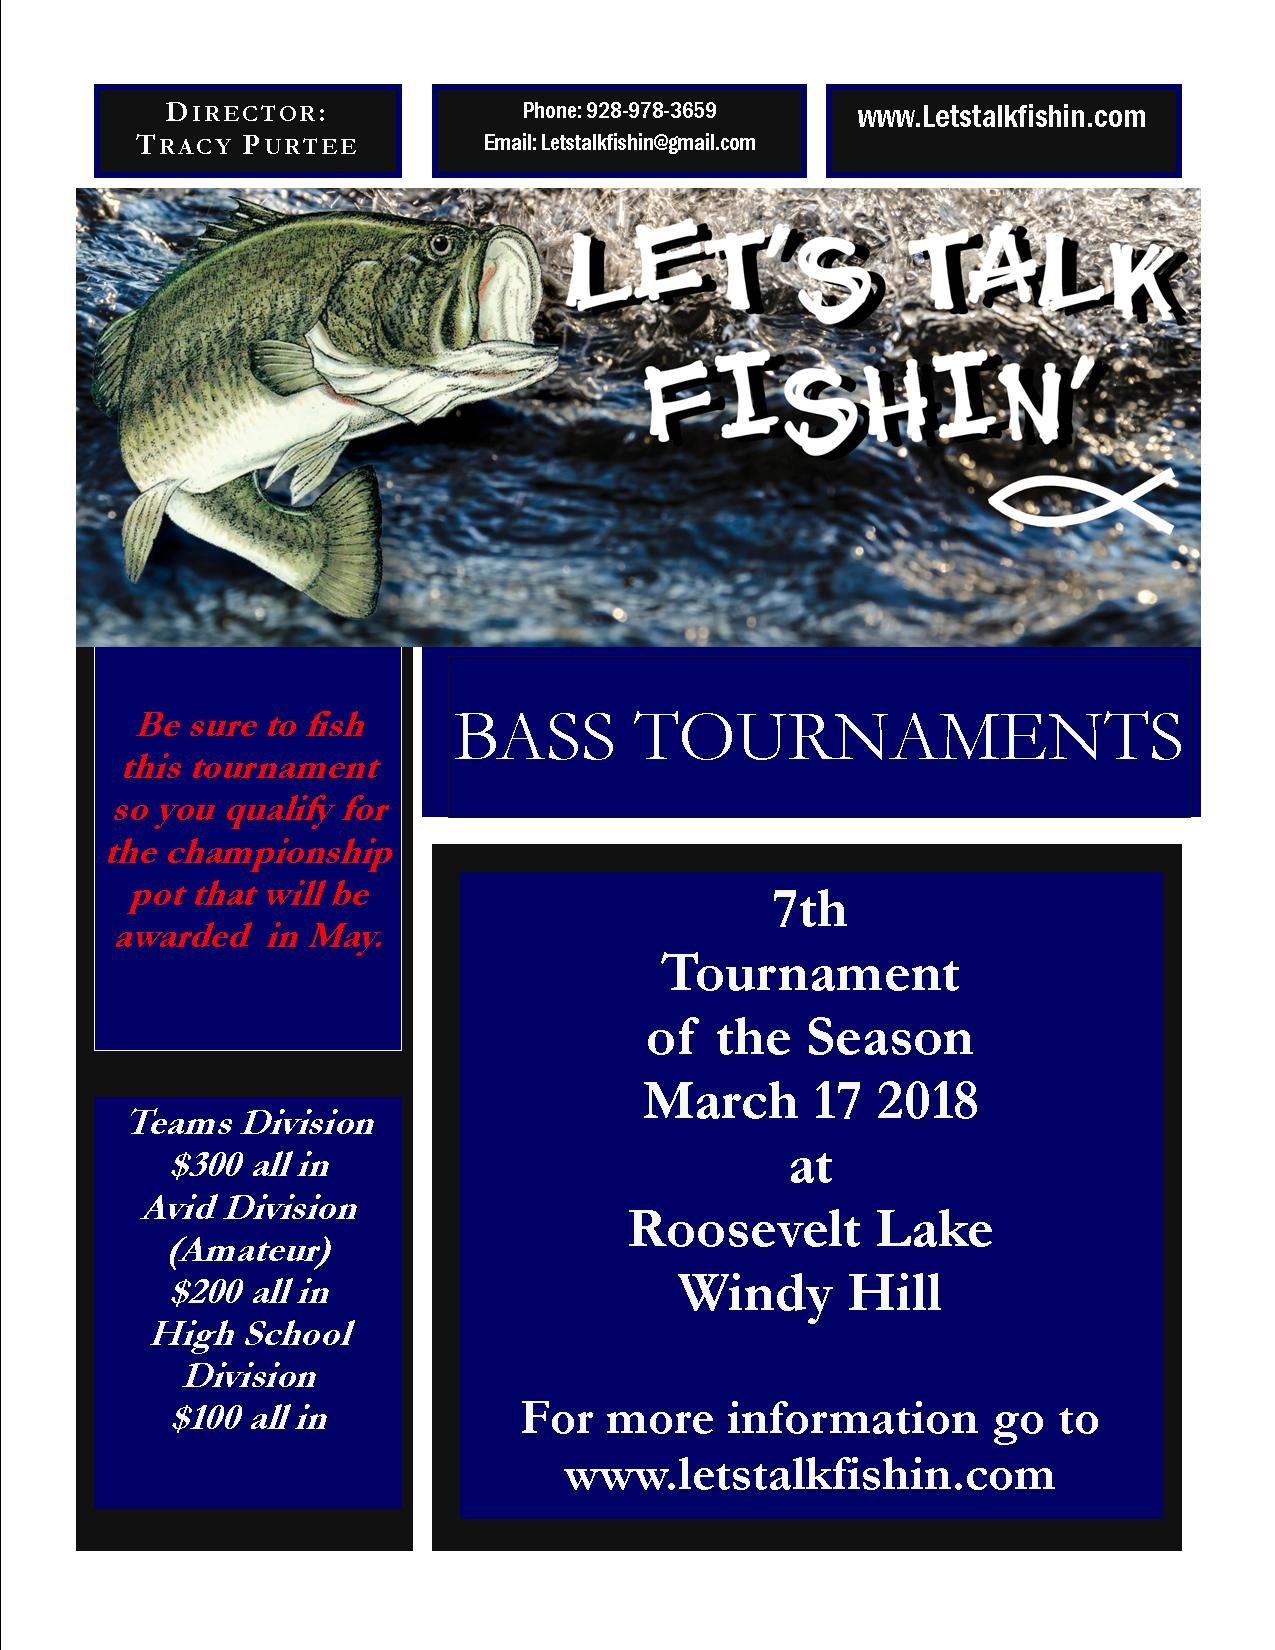 Click image for larger version  Name:7th Tournament.jpg Views:1029 Size:283.6 KB ID:96826